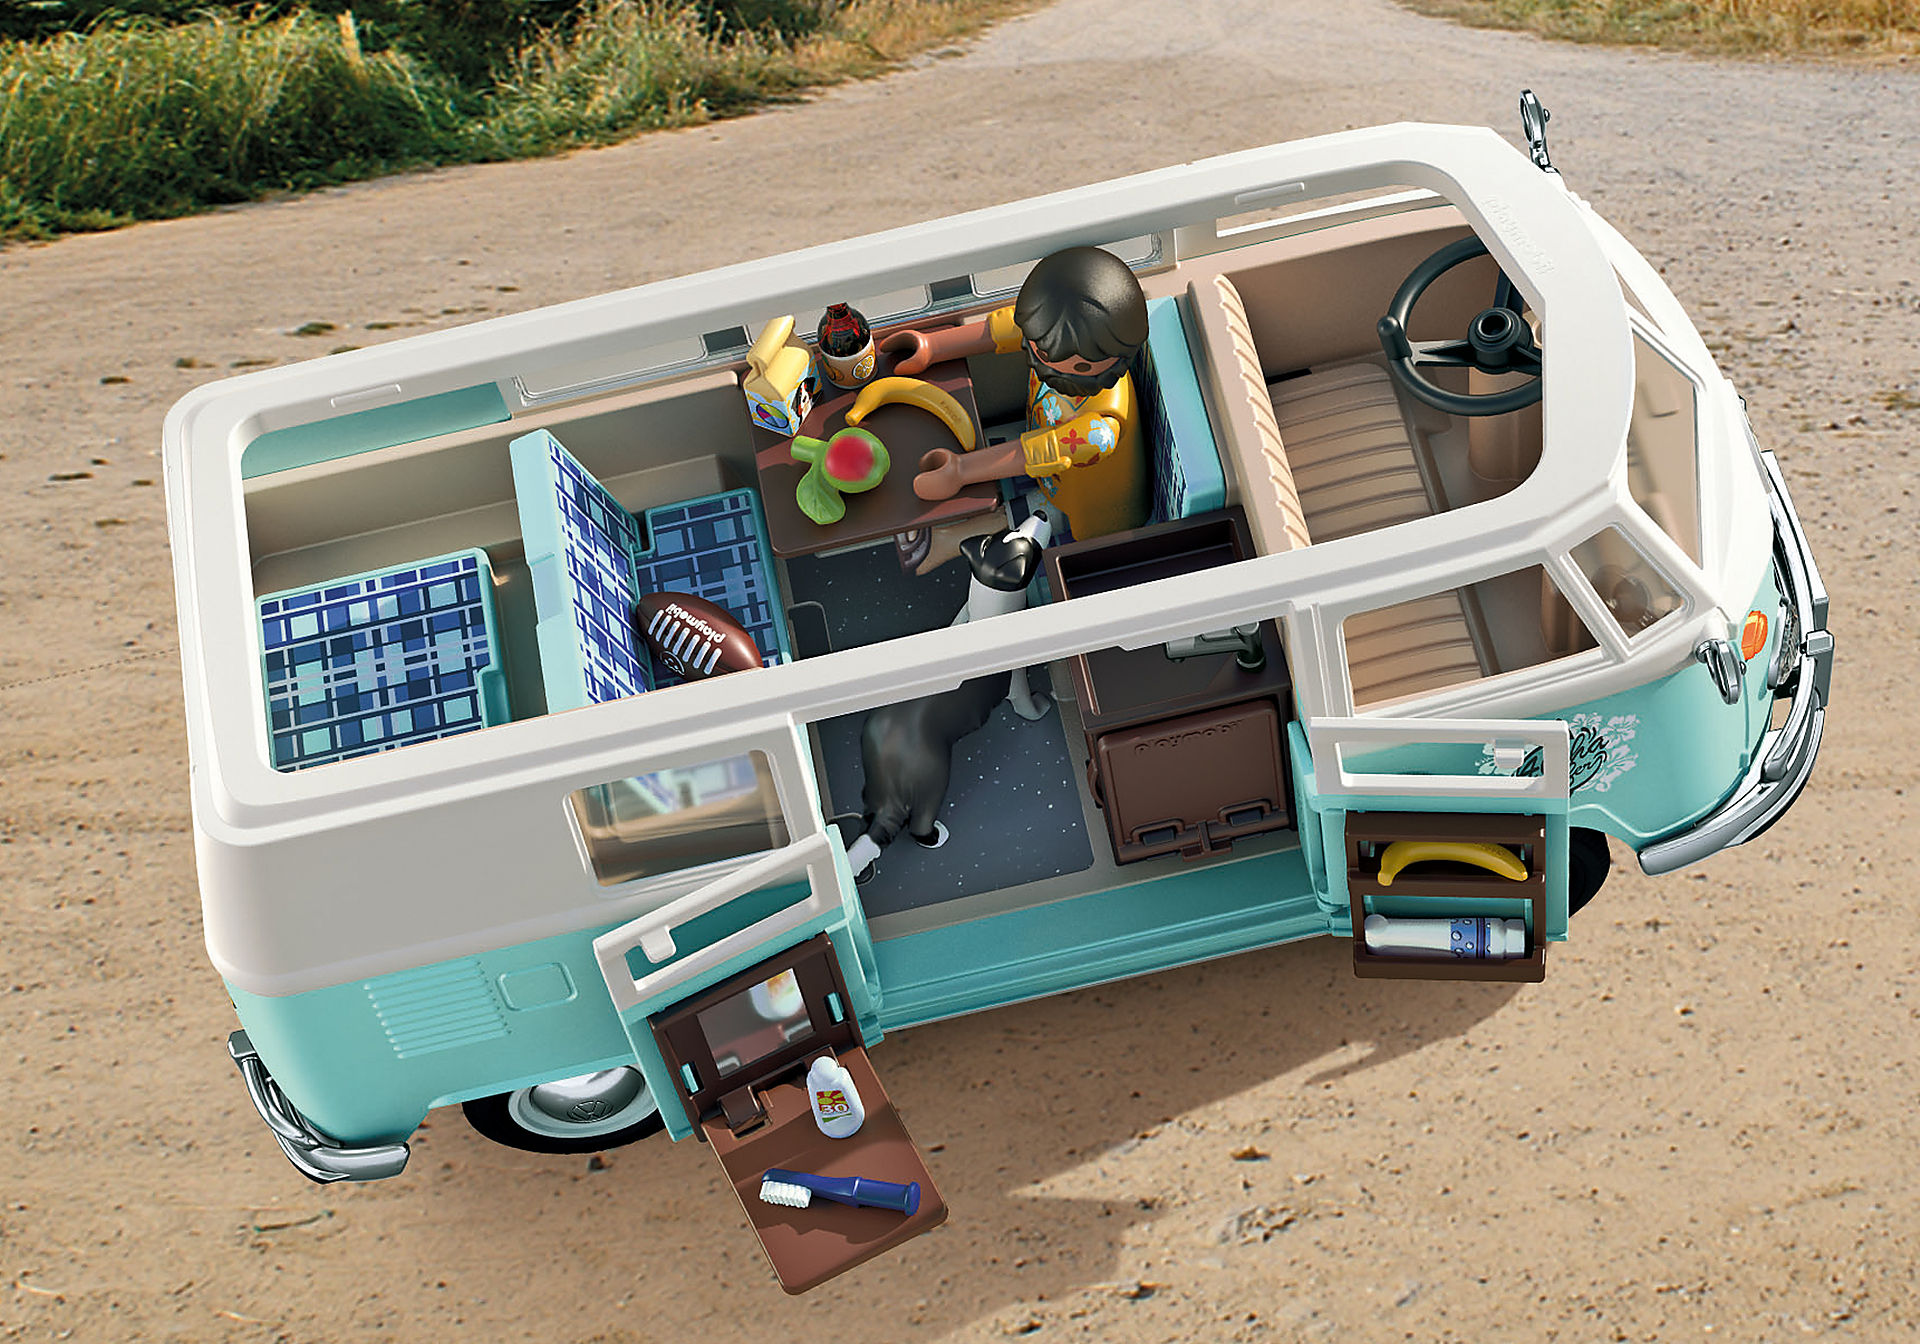 70826 Volkswagen T1 Camping Bus - Special Edition zoom image8